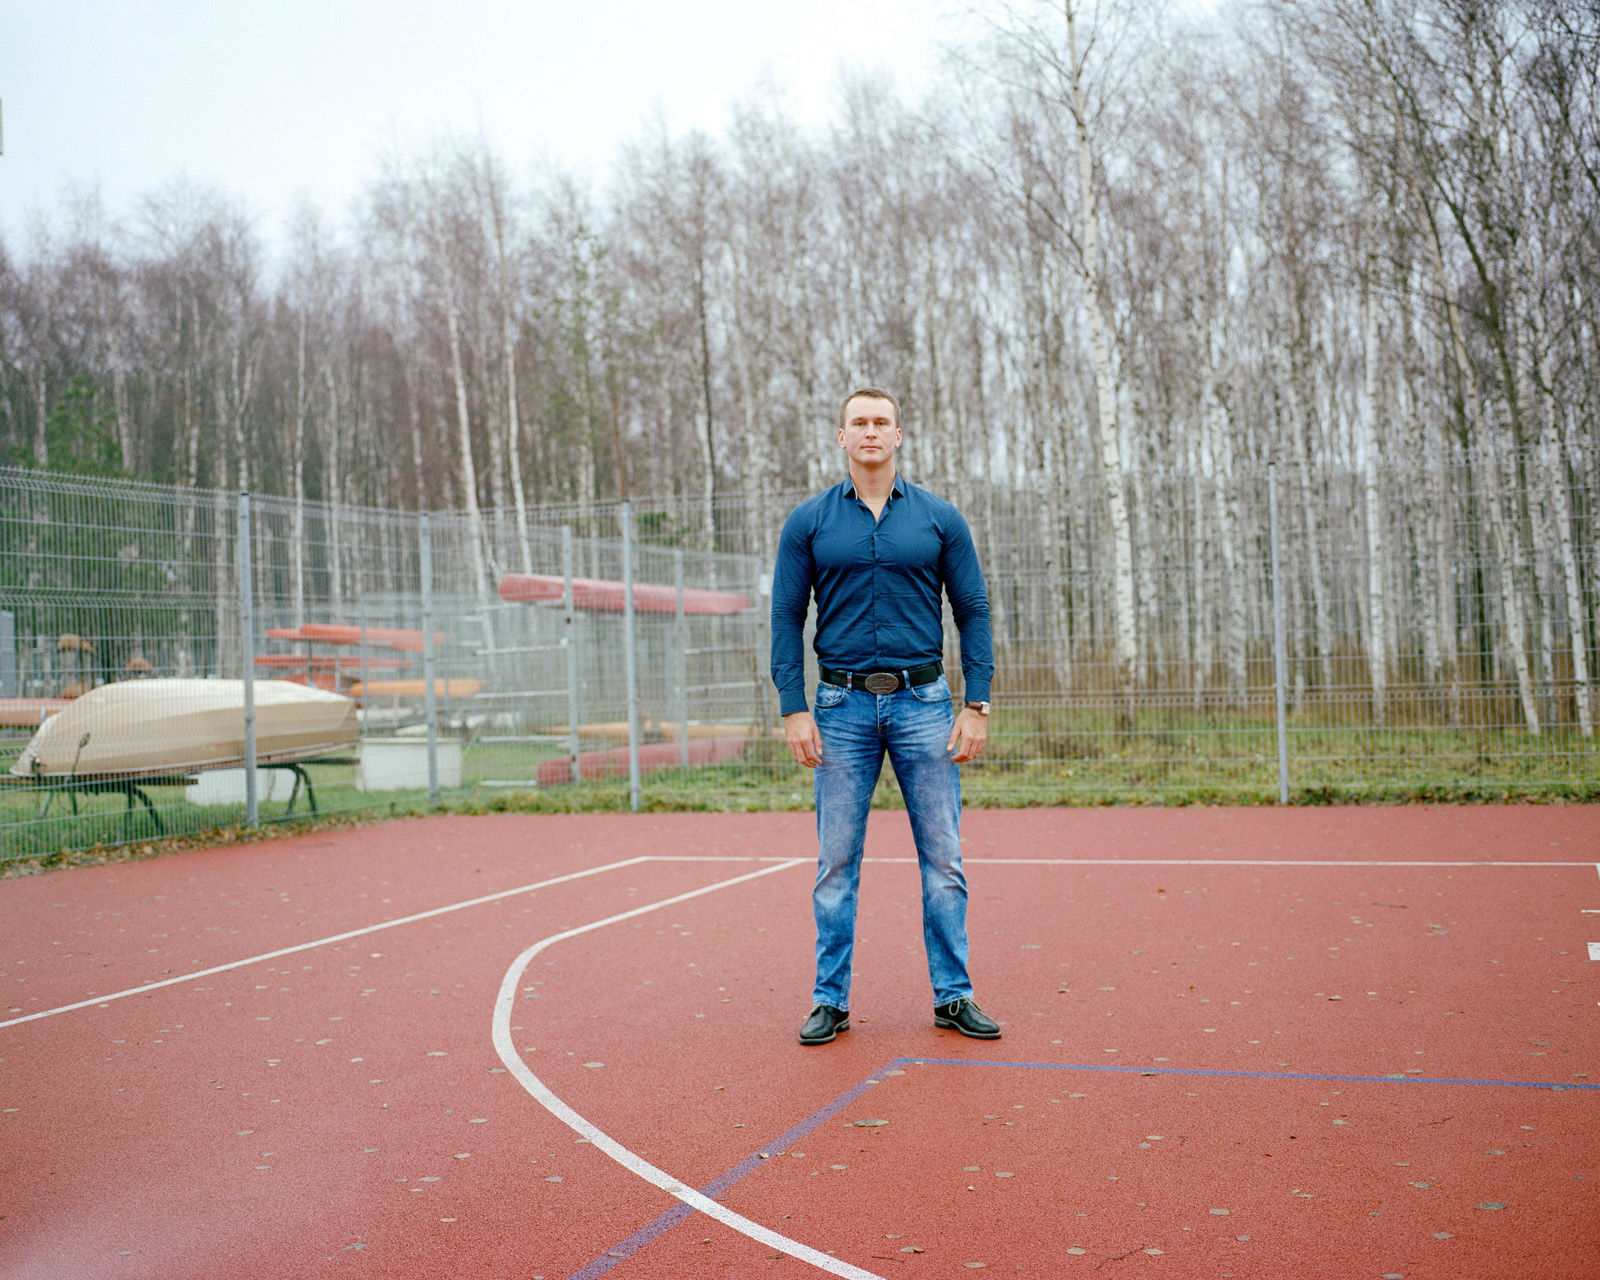 Jevgenij Shuklin, a 31-year-old sportsman and member of the city council